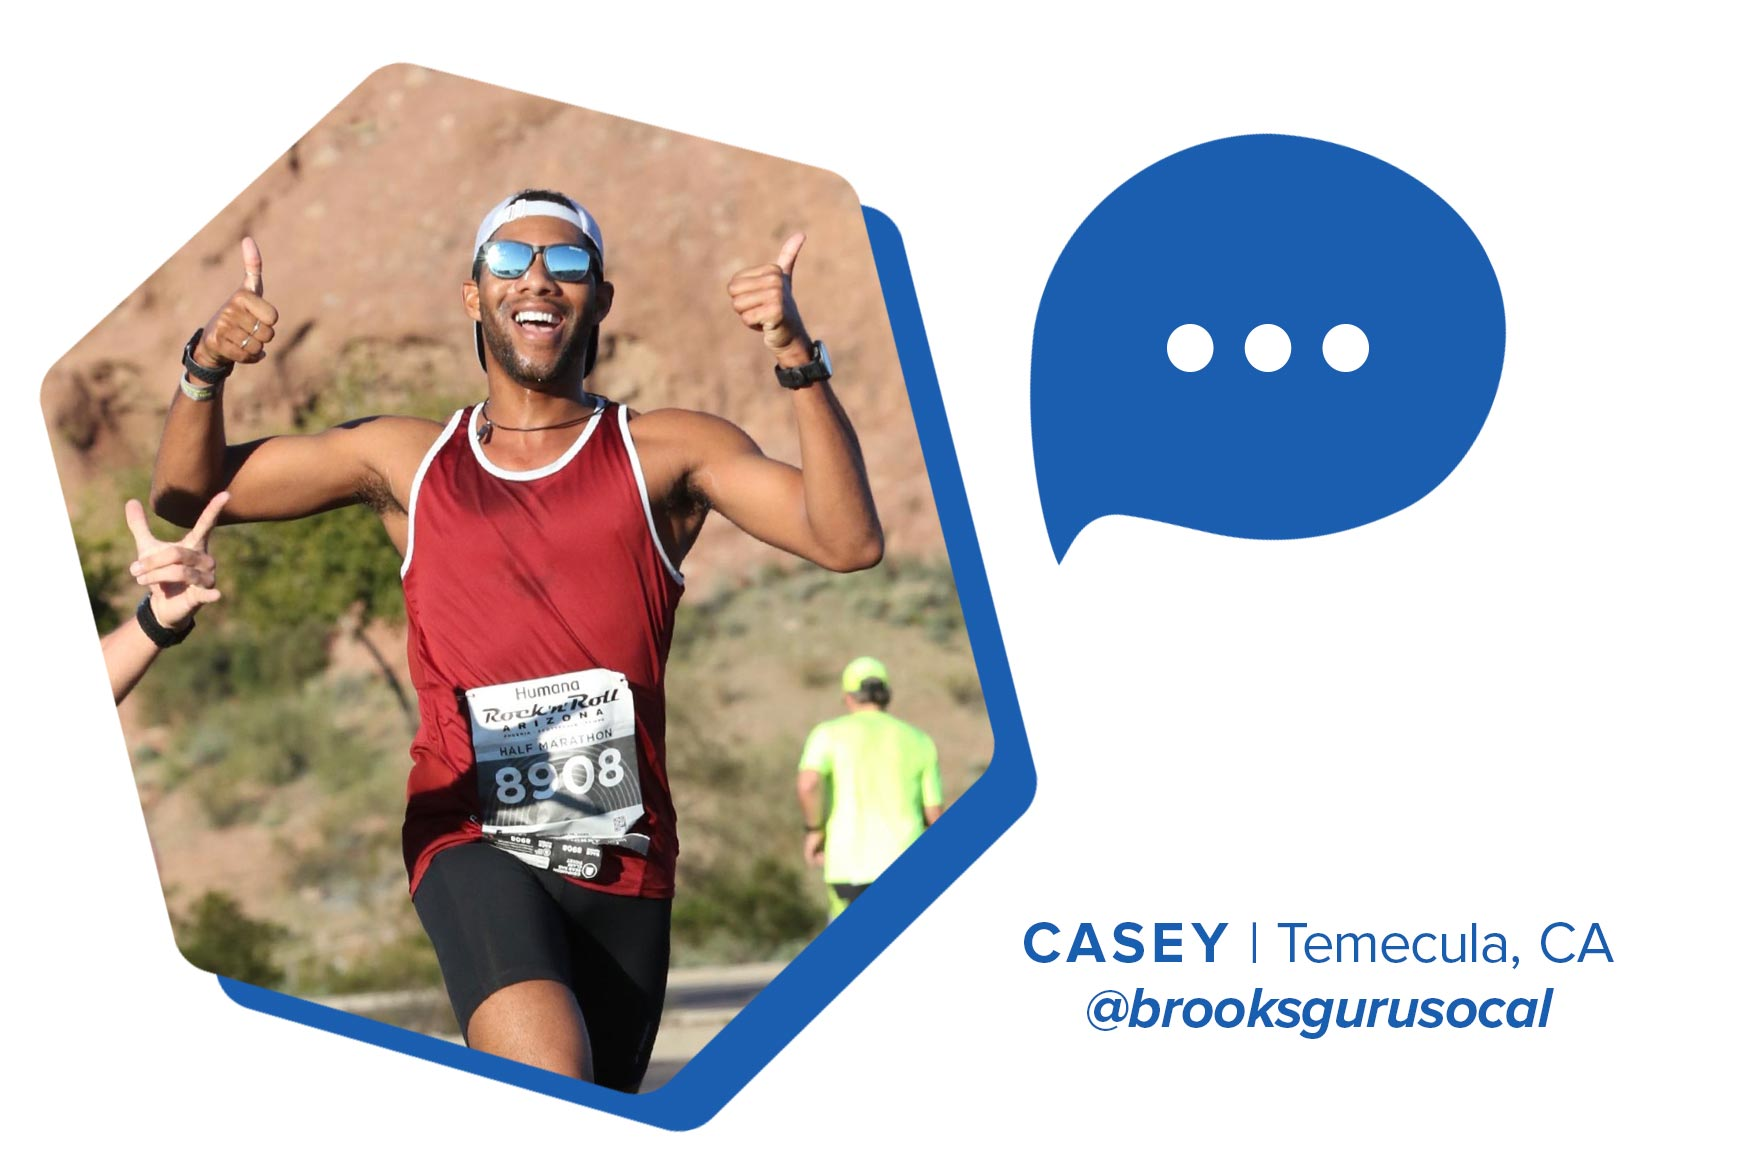 Casey on a run and text that reads 'Casey| Temecula, CA | @brooksgurusocal